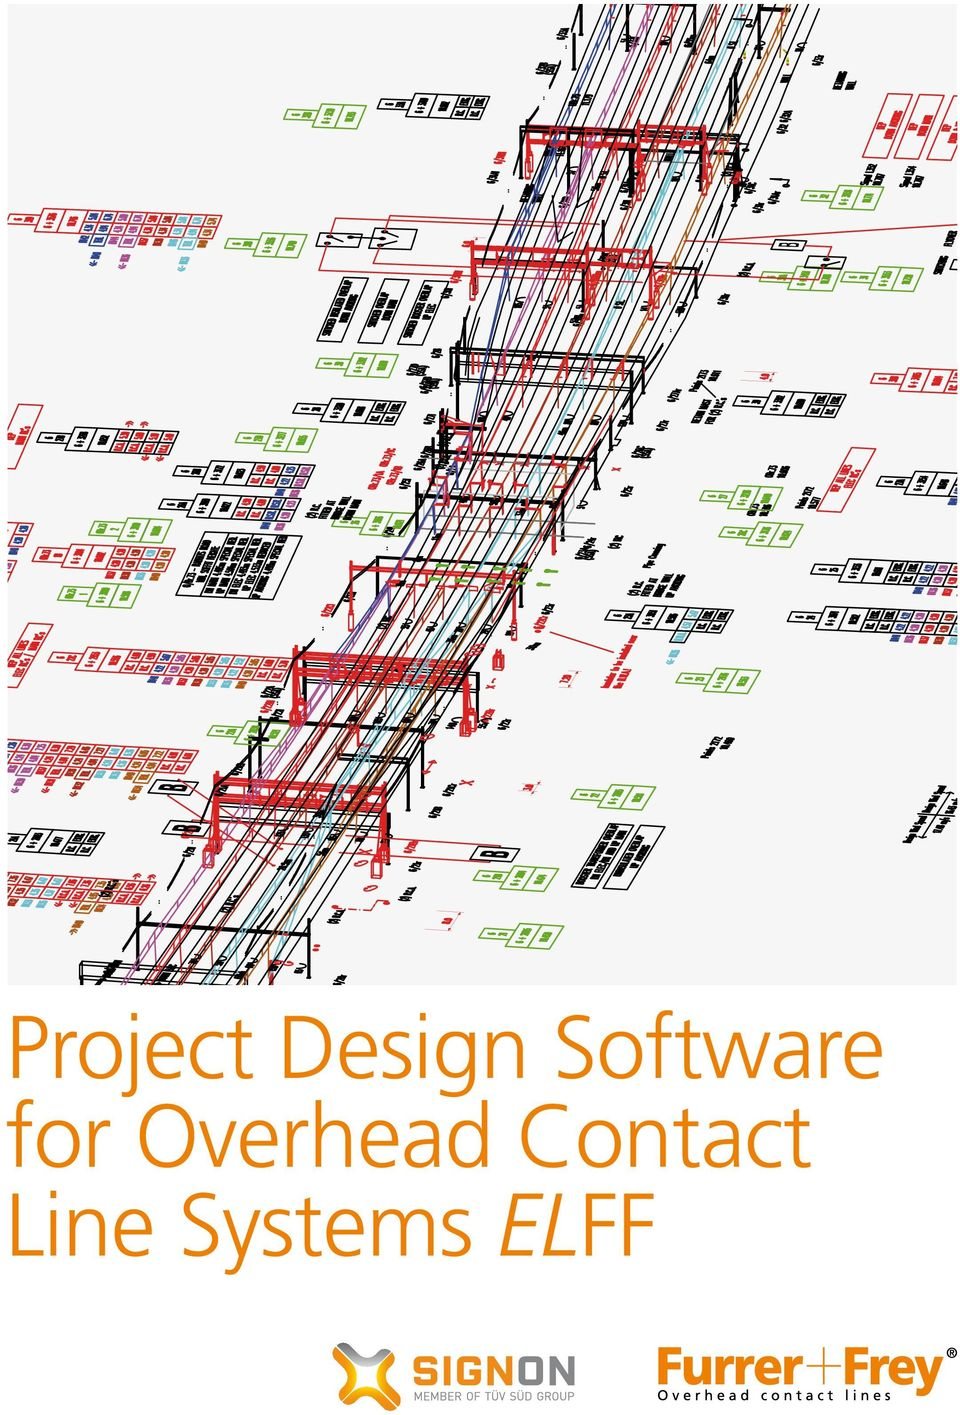 Project Design Software for Overhead Contact Line Systems